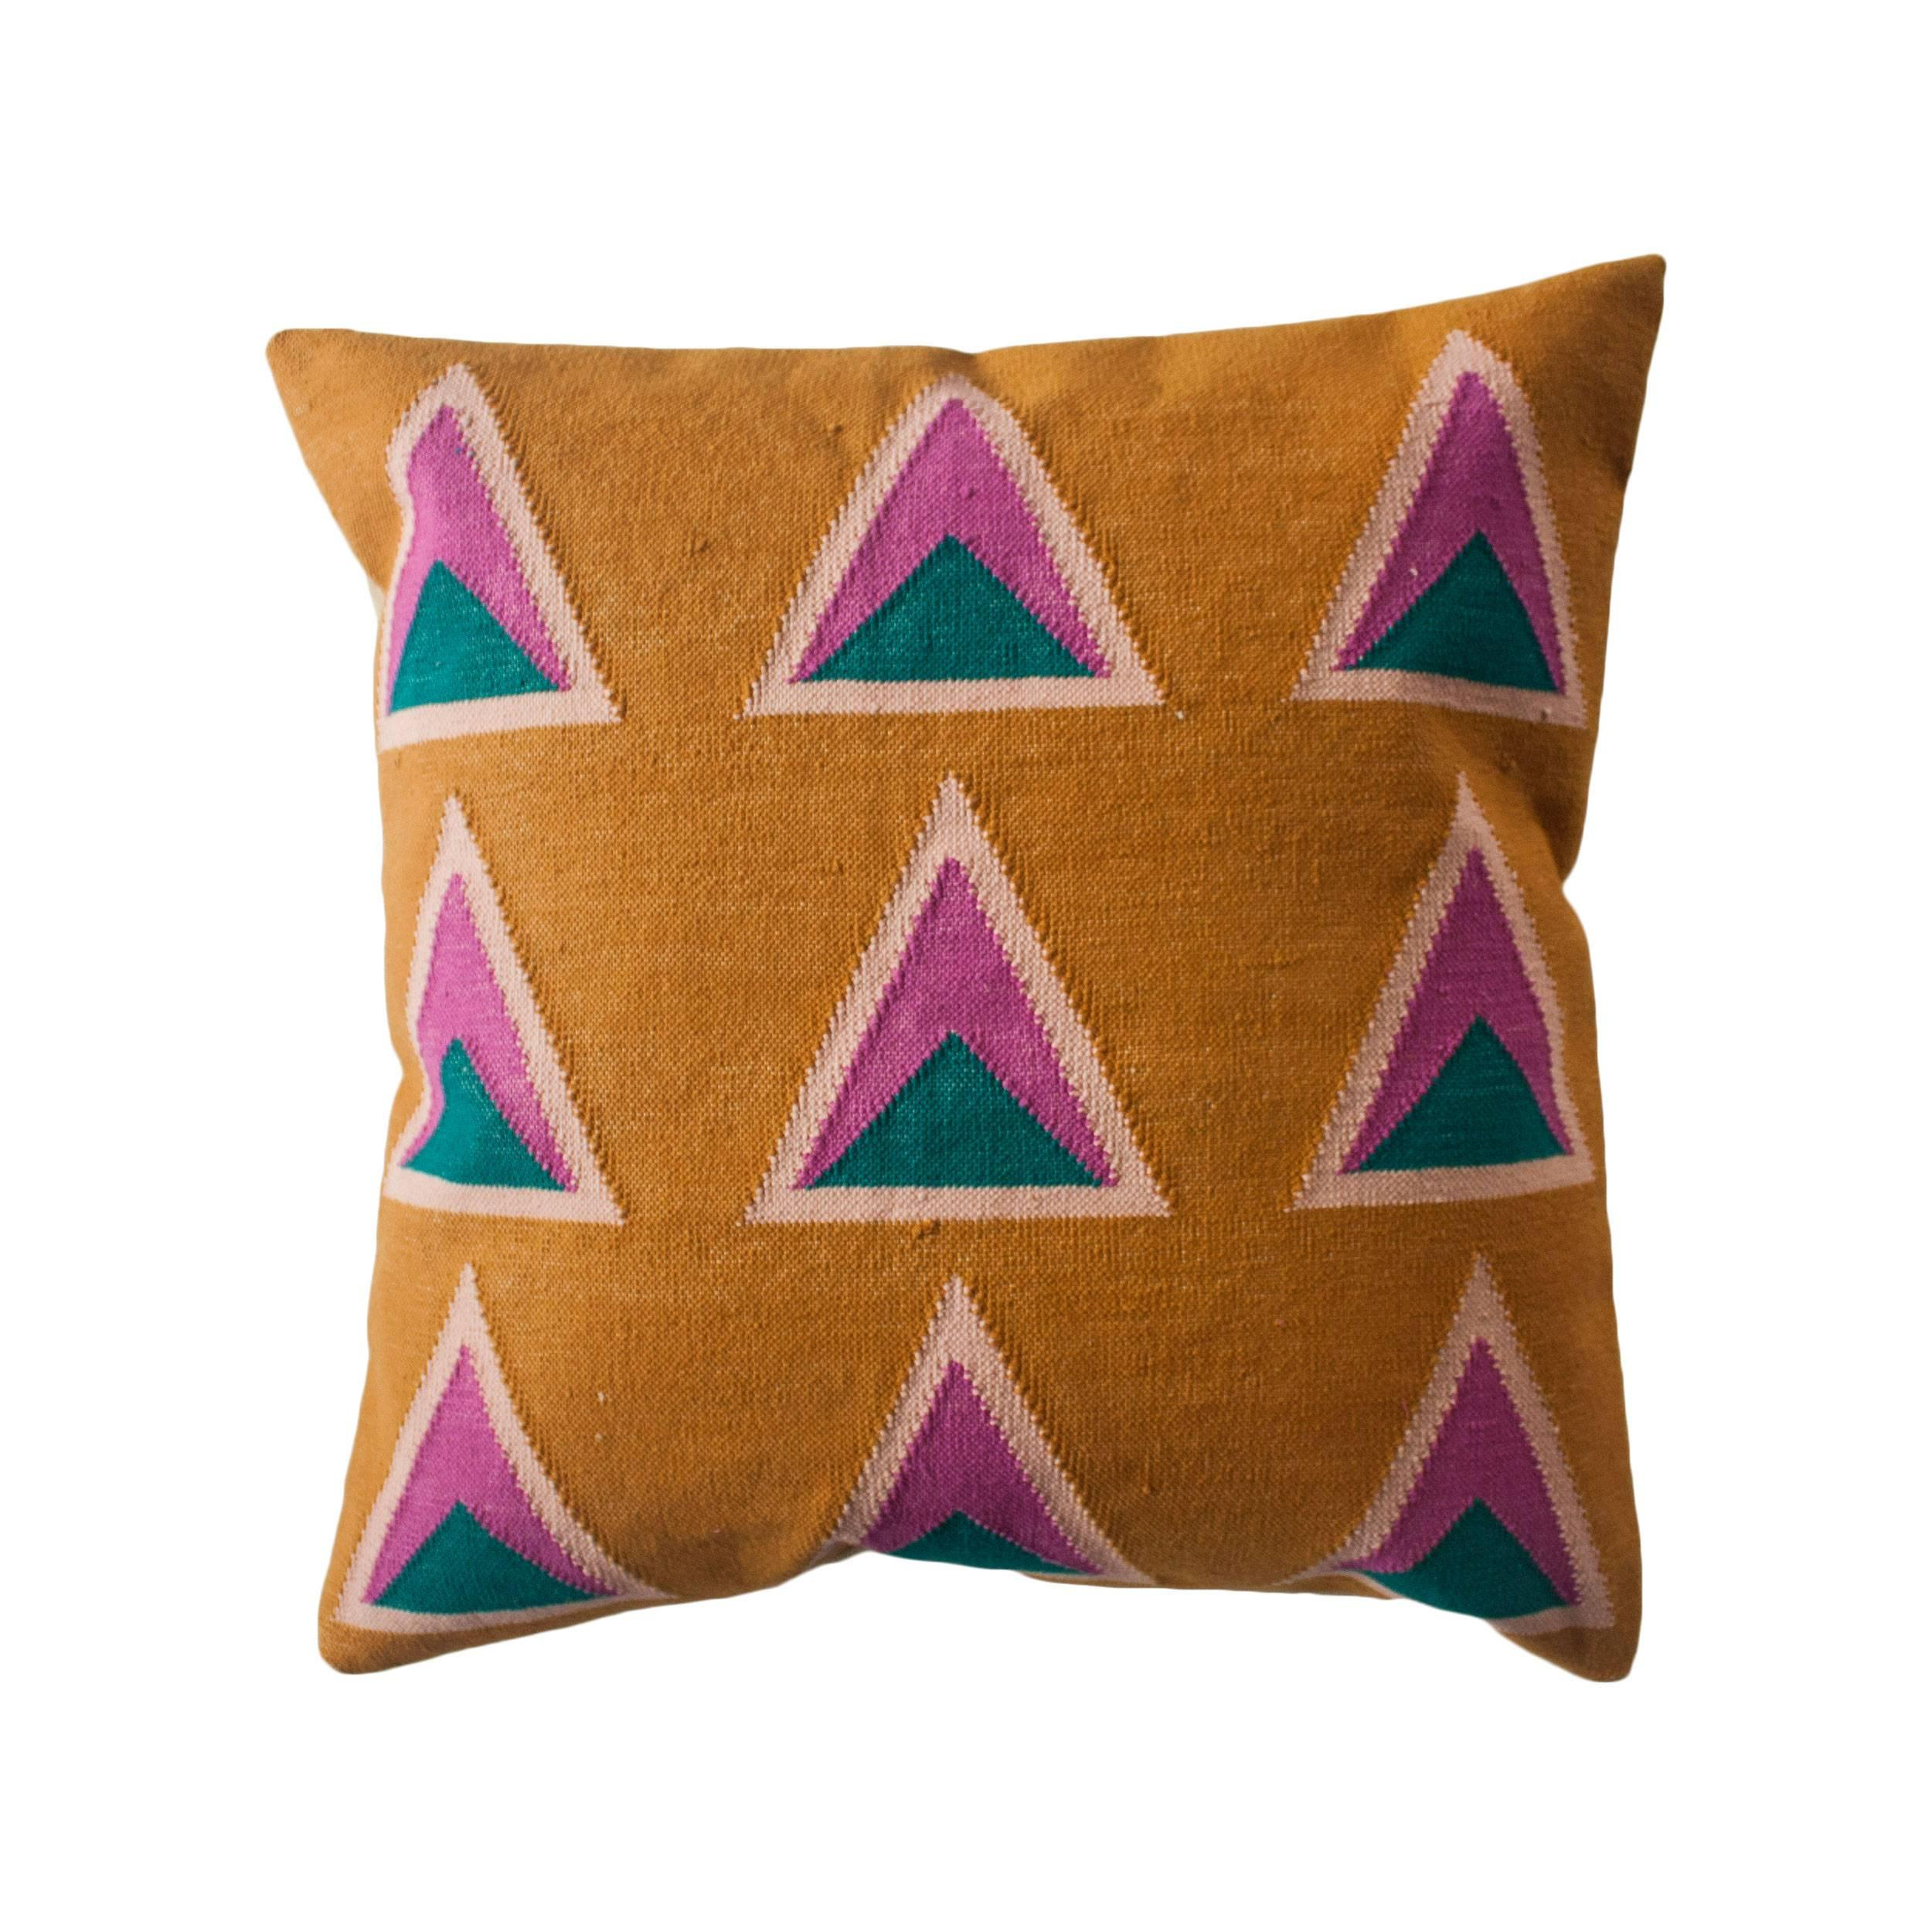 Geometric Maya Up Modern Throw Pillow Cover For Sale At 1stdibs